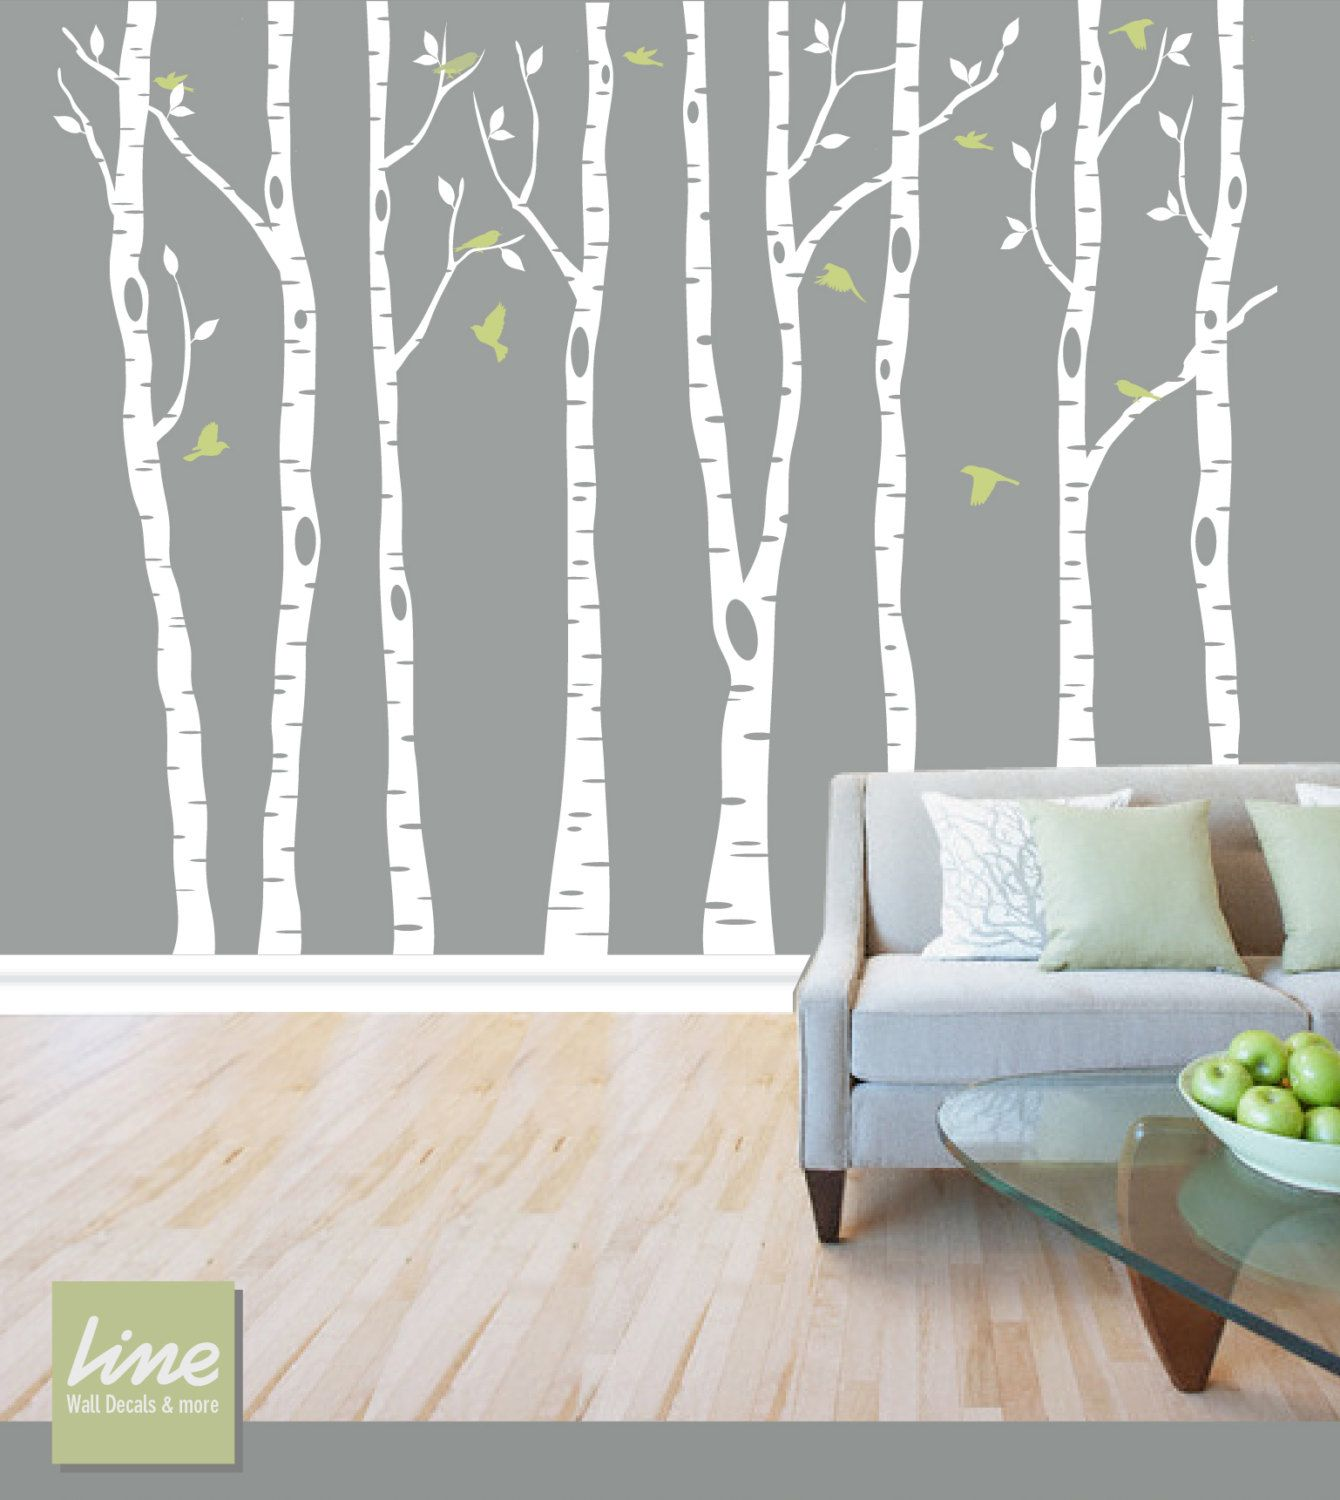 Wild birch forest with owls vinyl wall decal - Wall Birch Tree Decal Forest Birch Trees Birch Trees Vinyl Birch Tree Wall Decal Kids Vinyl Sticker Removable 84 Tall 7 Feet